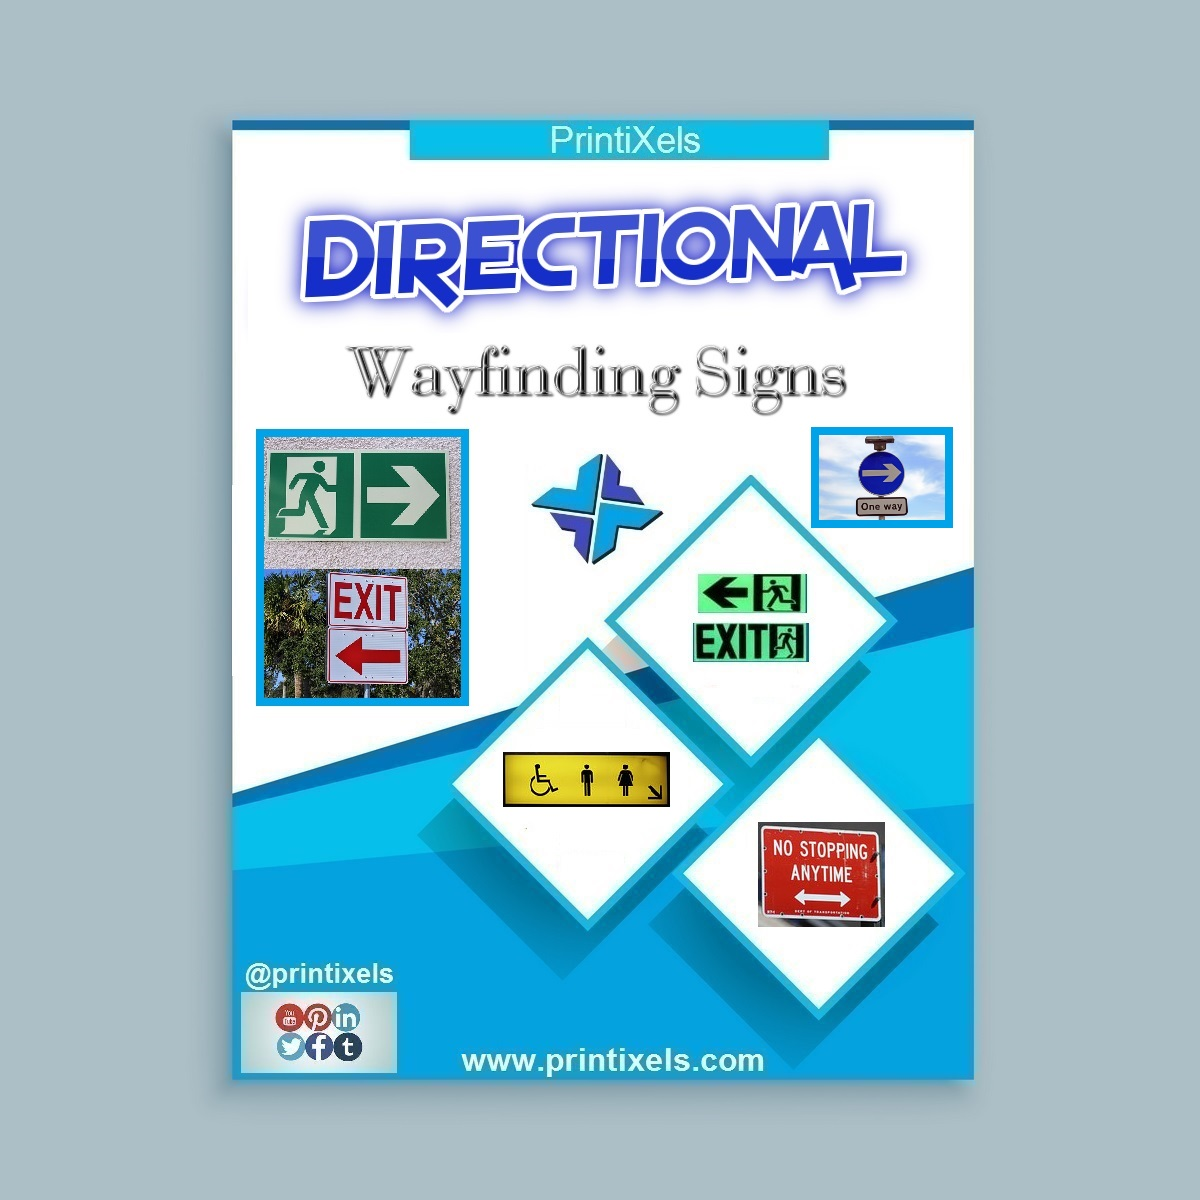 Directional & Wayfinding Signs